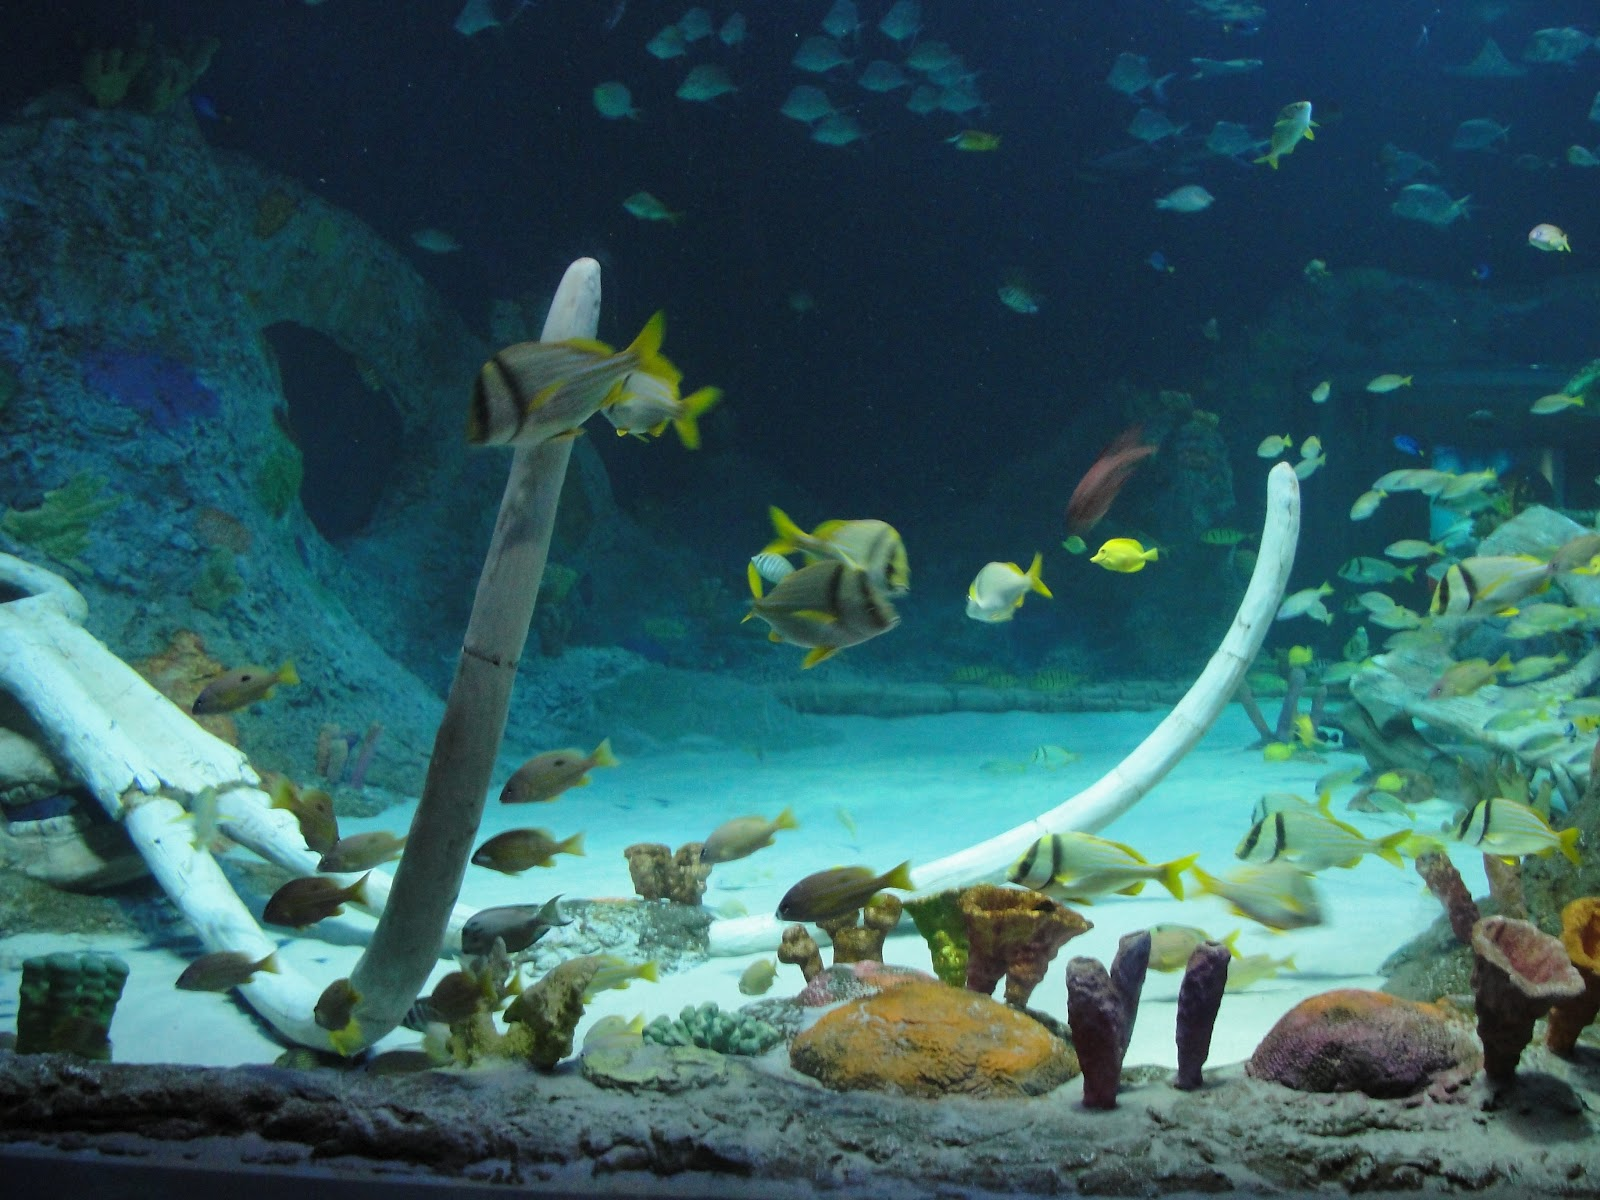 aquarium kc - Kansas City, MO: SEA LIFE Aquarium and LEGOLAND Discovery Center 2017 - Fish Tank ...